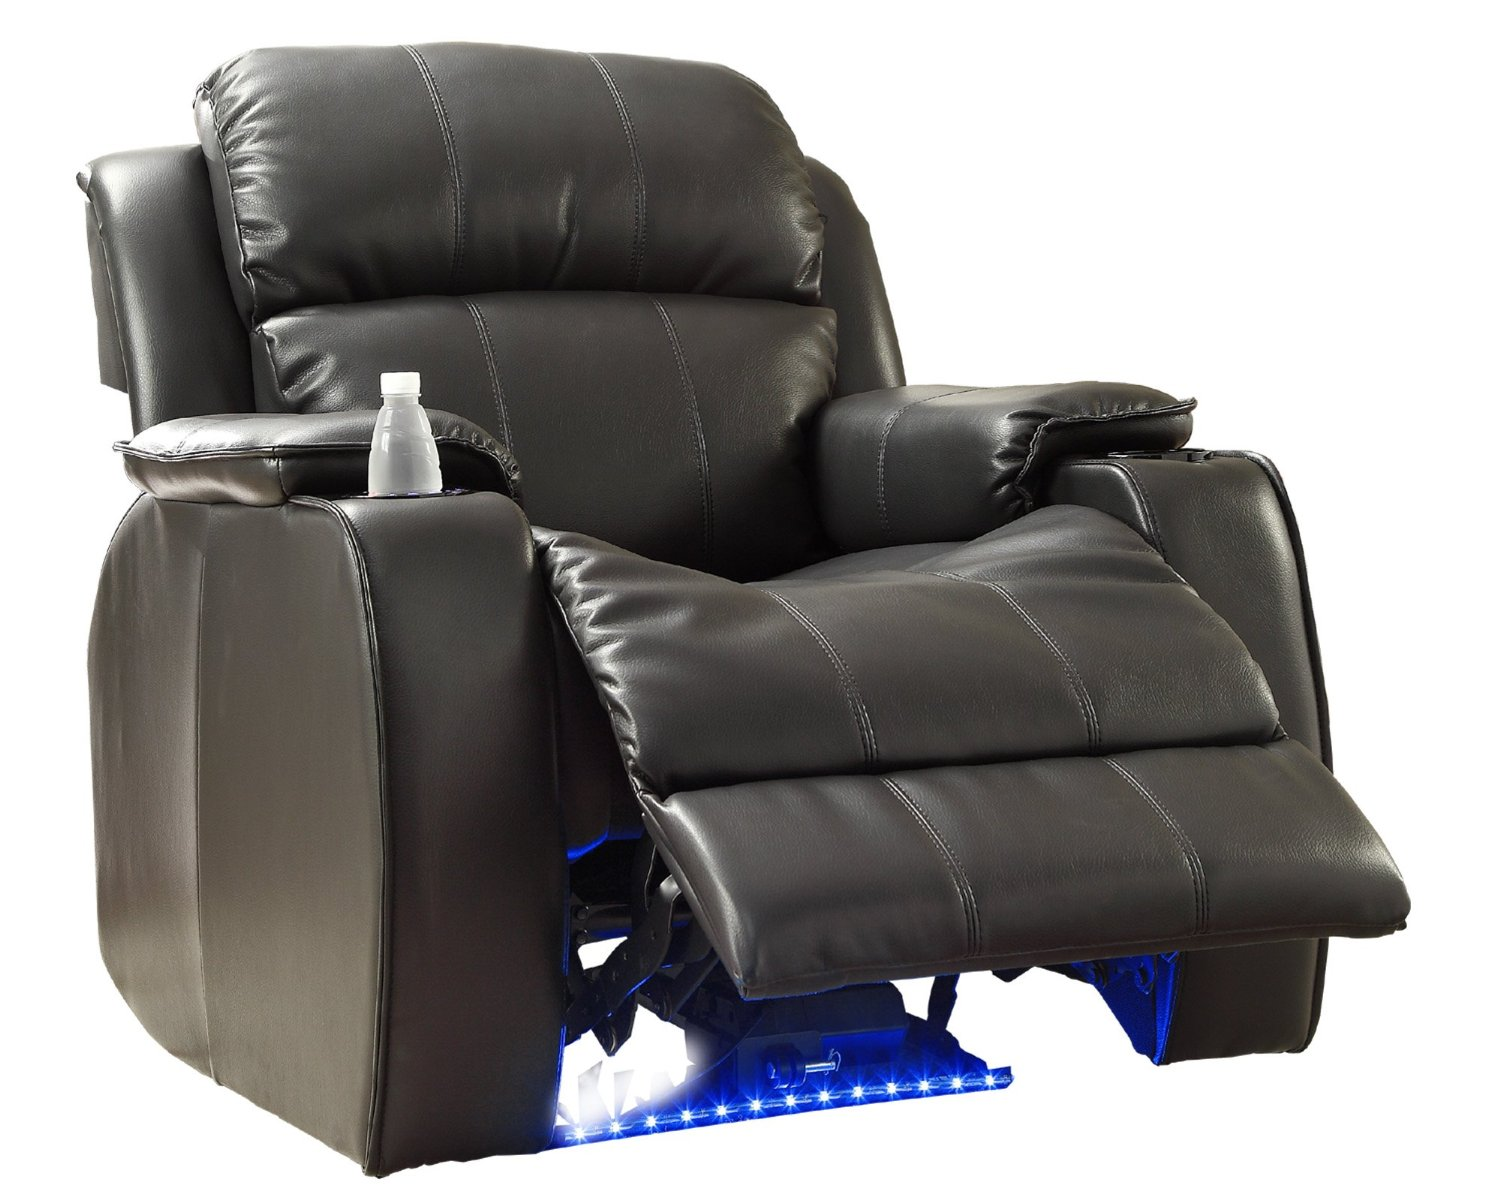 sc 1 st  Best Recliners & Top 3 Best Quality Recliners with Coolers | Best Recliners islam-shia.org